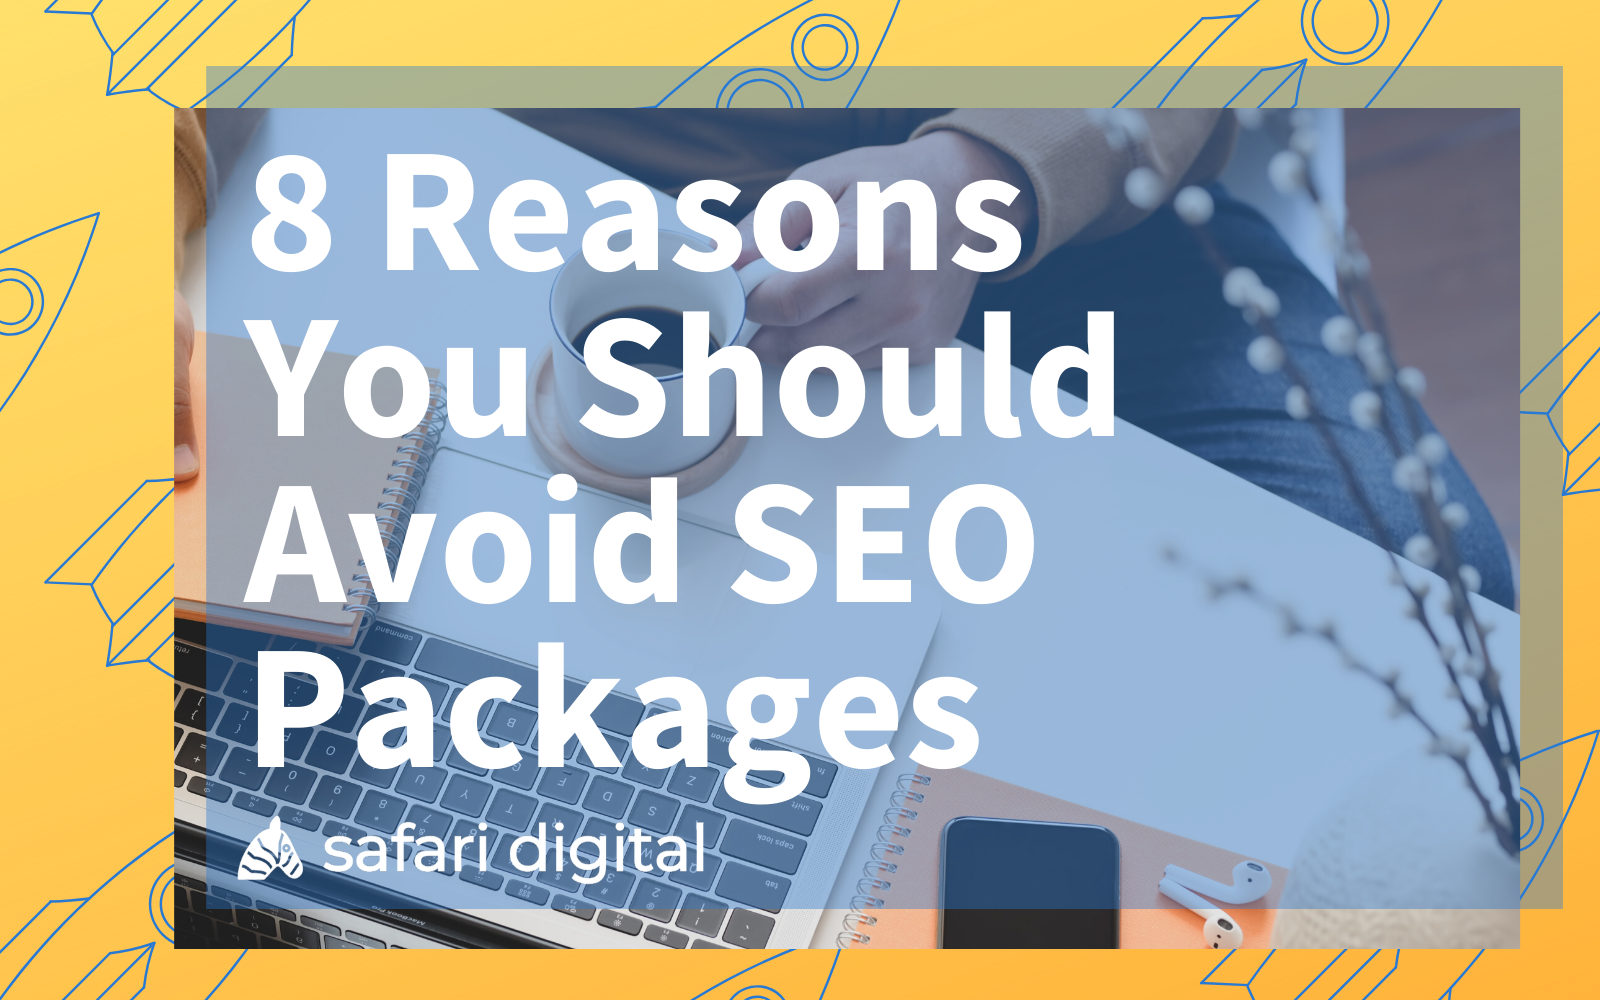 reasons to avoid seo packages article cover image large